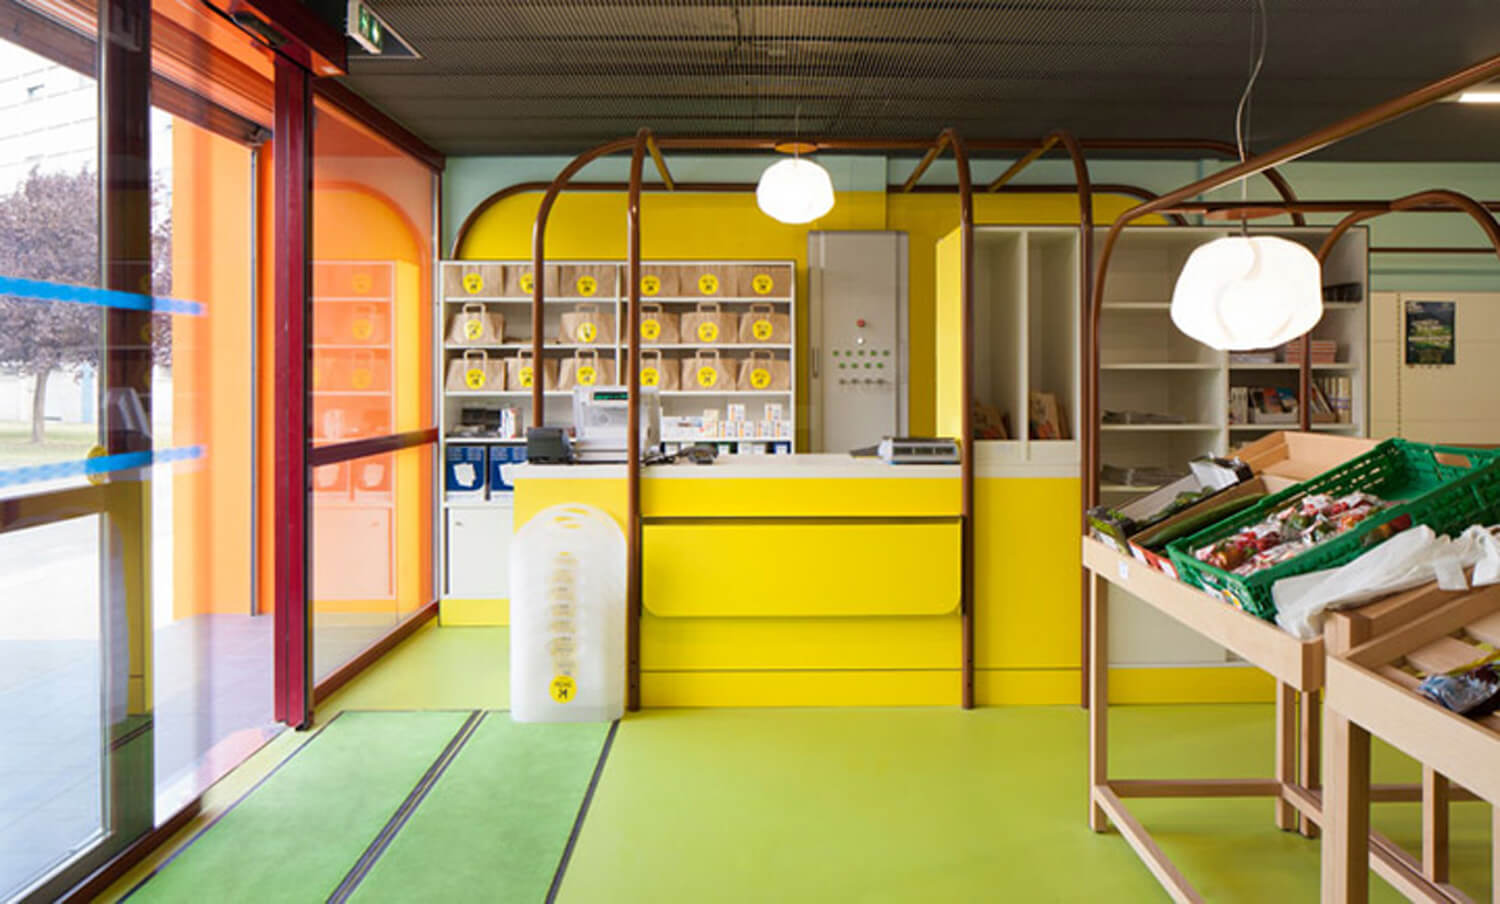 mini-M-grocery-shop-by-Matali-Crasset-Praline-Toulouse-France